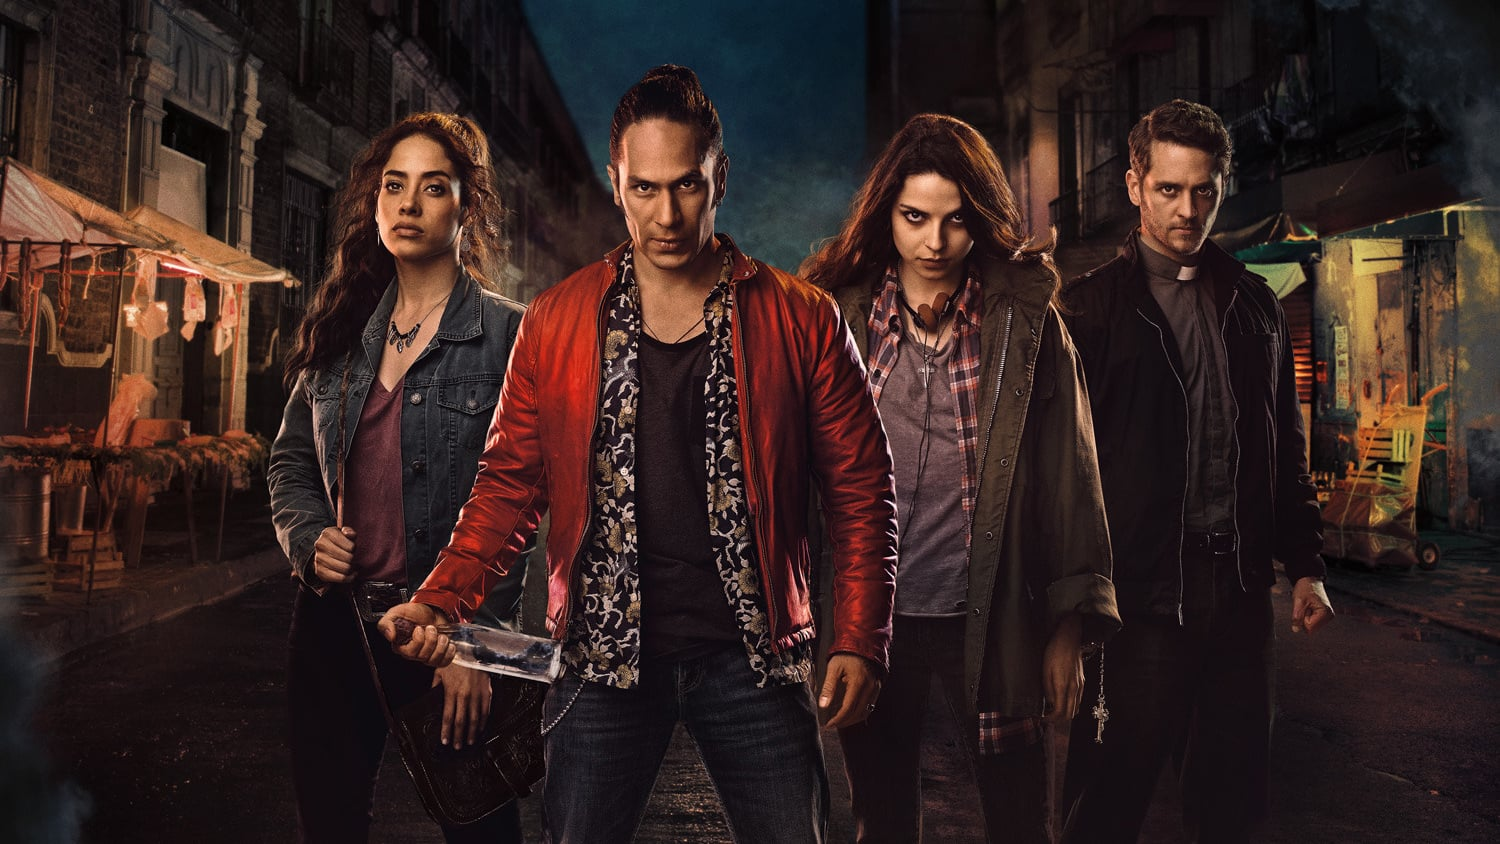 Diablero Season 2 Netflix Release Date, Trailer, Cast, Episodes, Plot for the Mexican Horror Drama